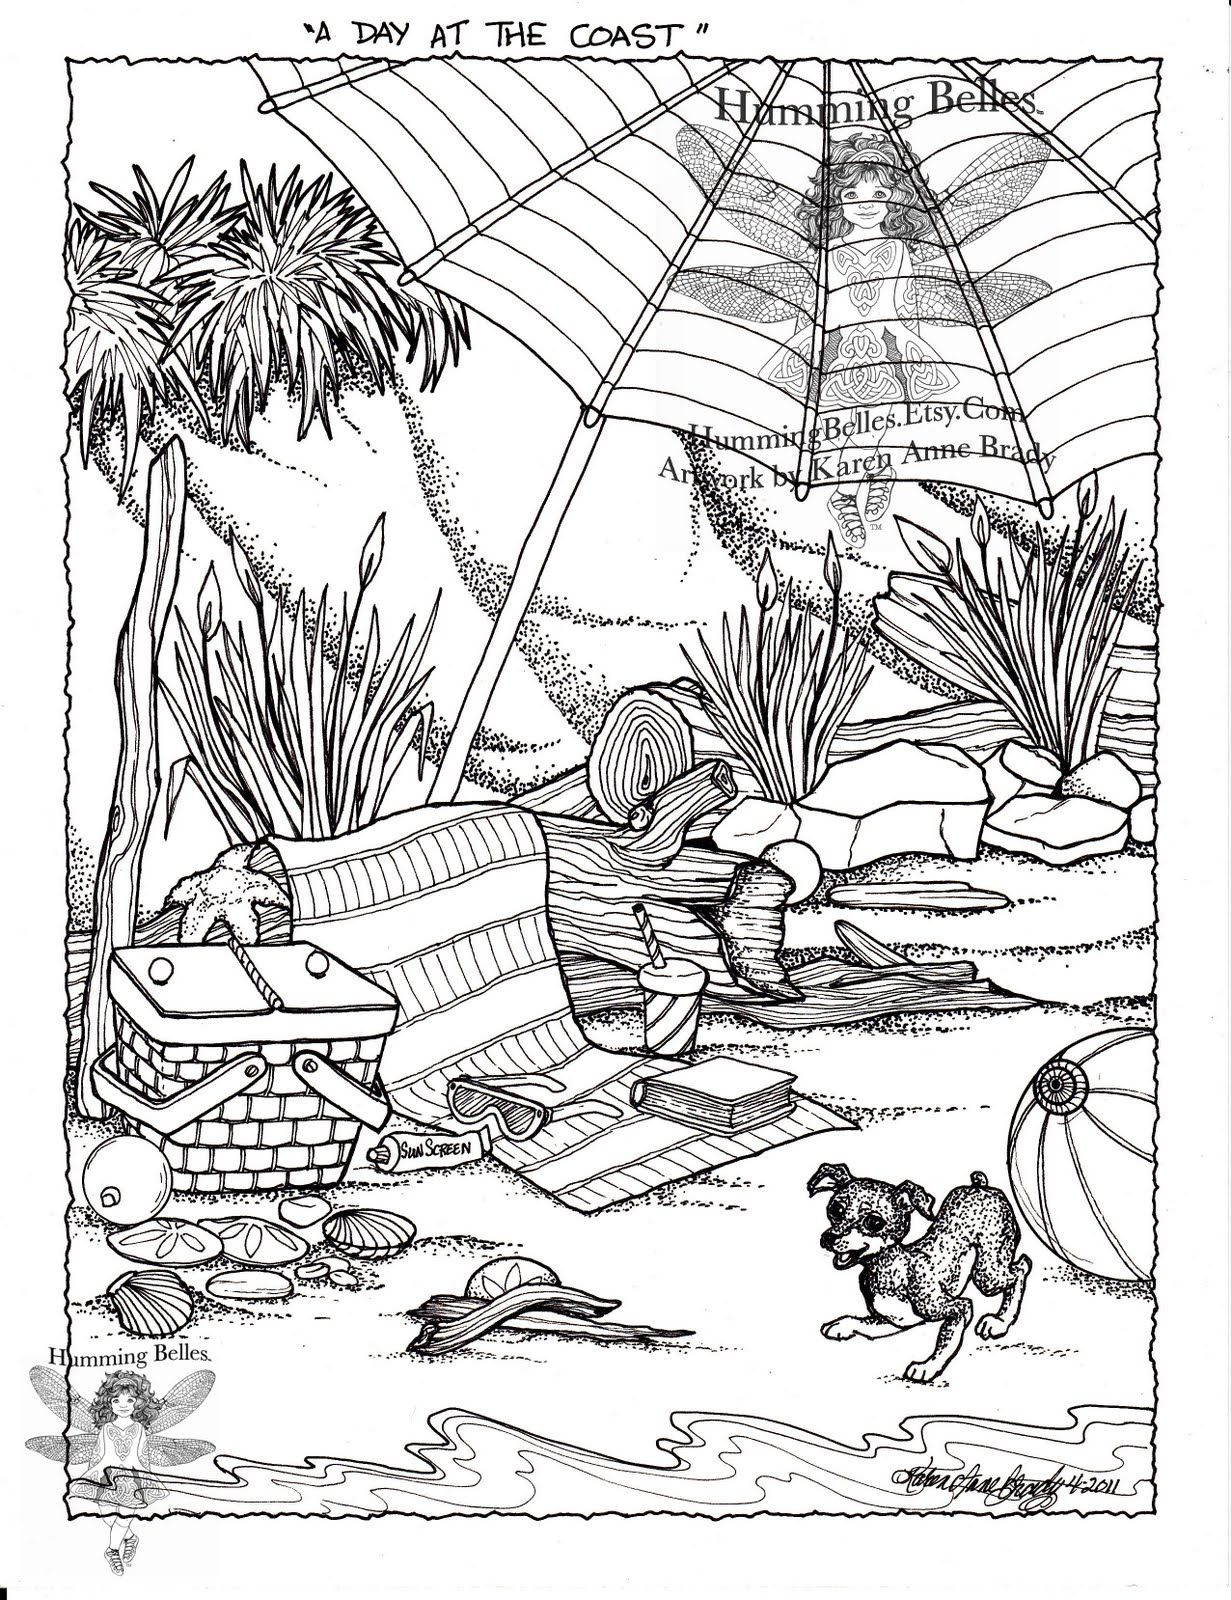 one coloring page with an and props for a regular at